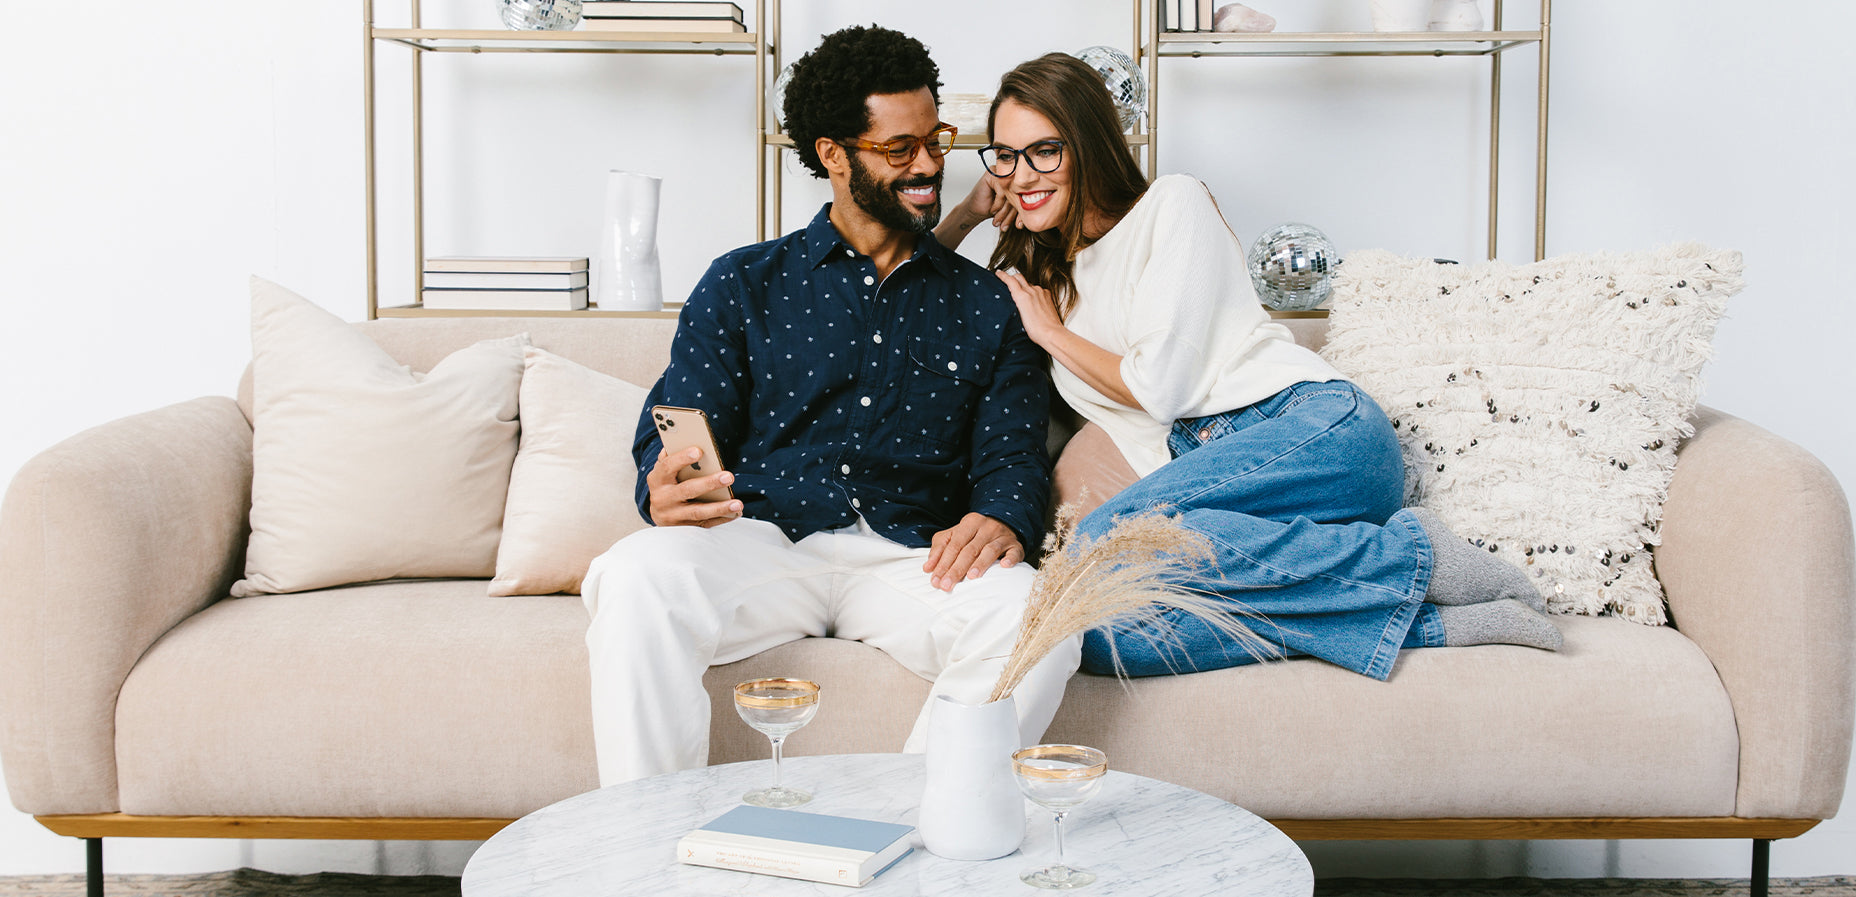 Man and woman sitting on a couch wearing Peepers blue light glasses